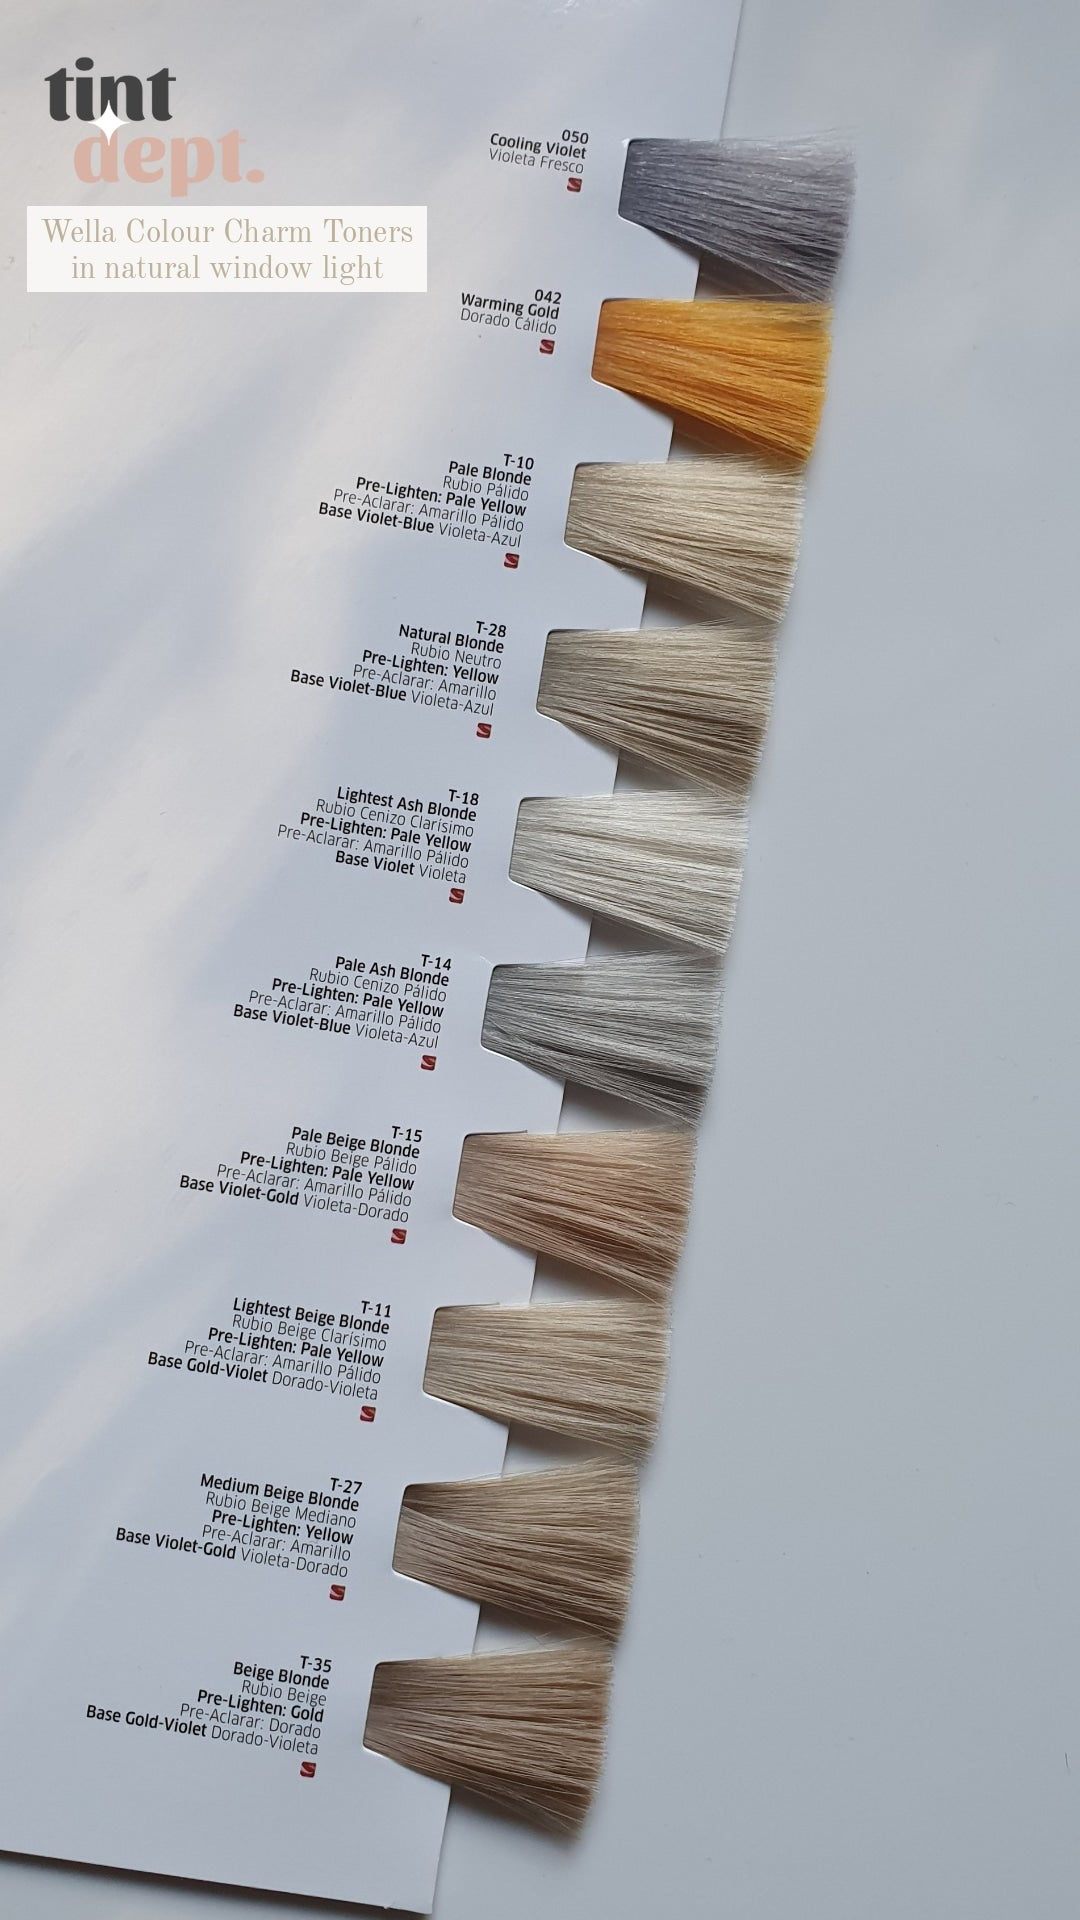 Wella Colour Charm Toner Swatches In Natural Light